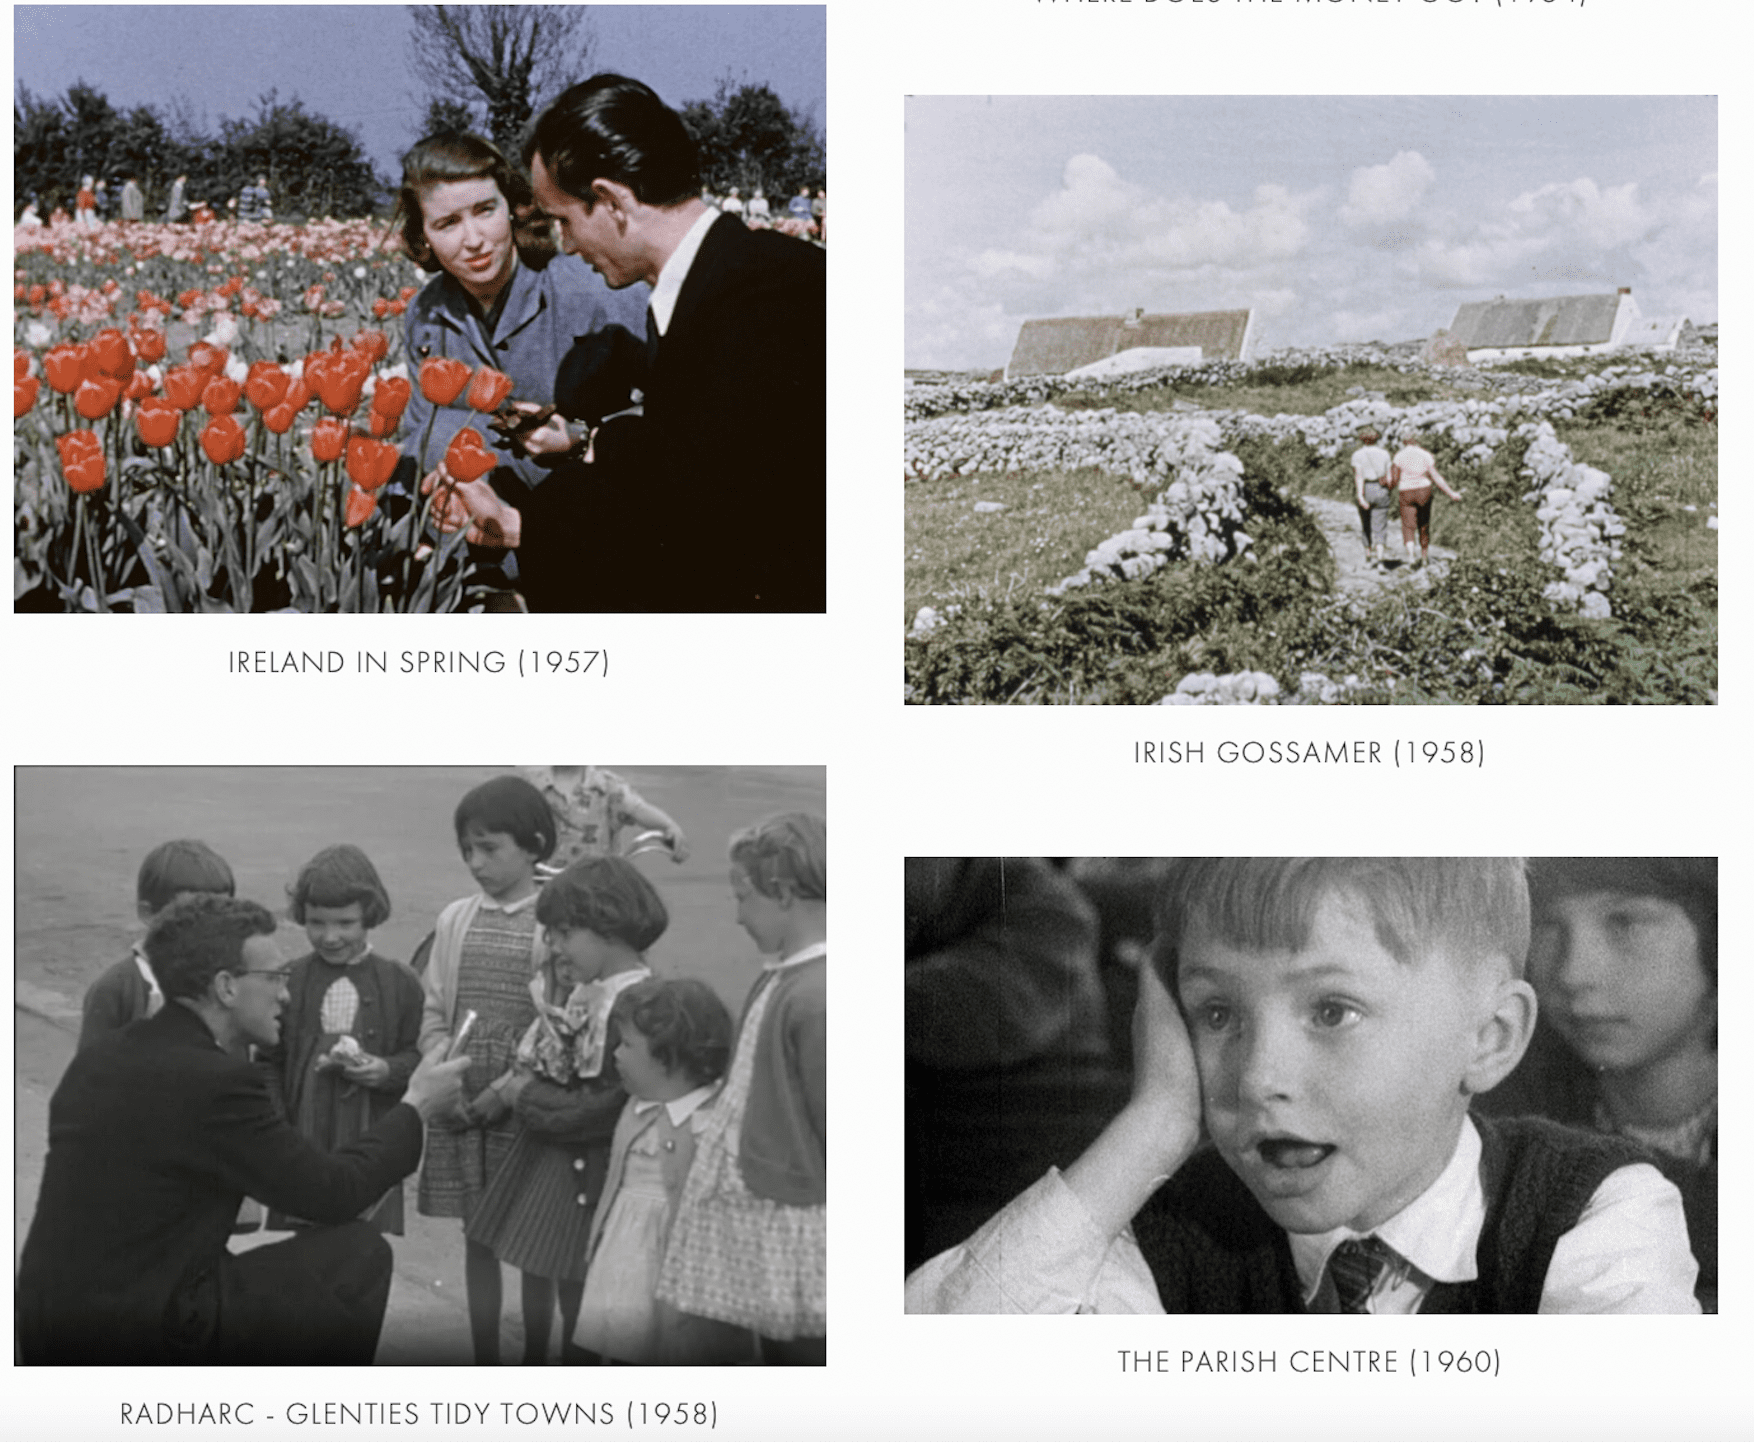 Workshop: 'Make Film History' Make Your Own Archive Documentary